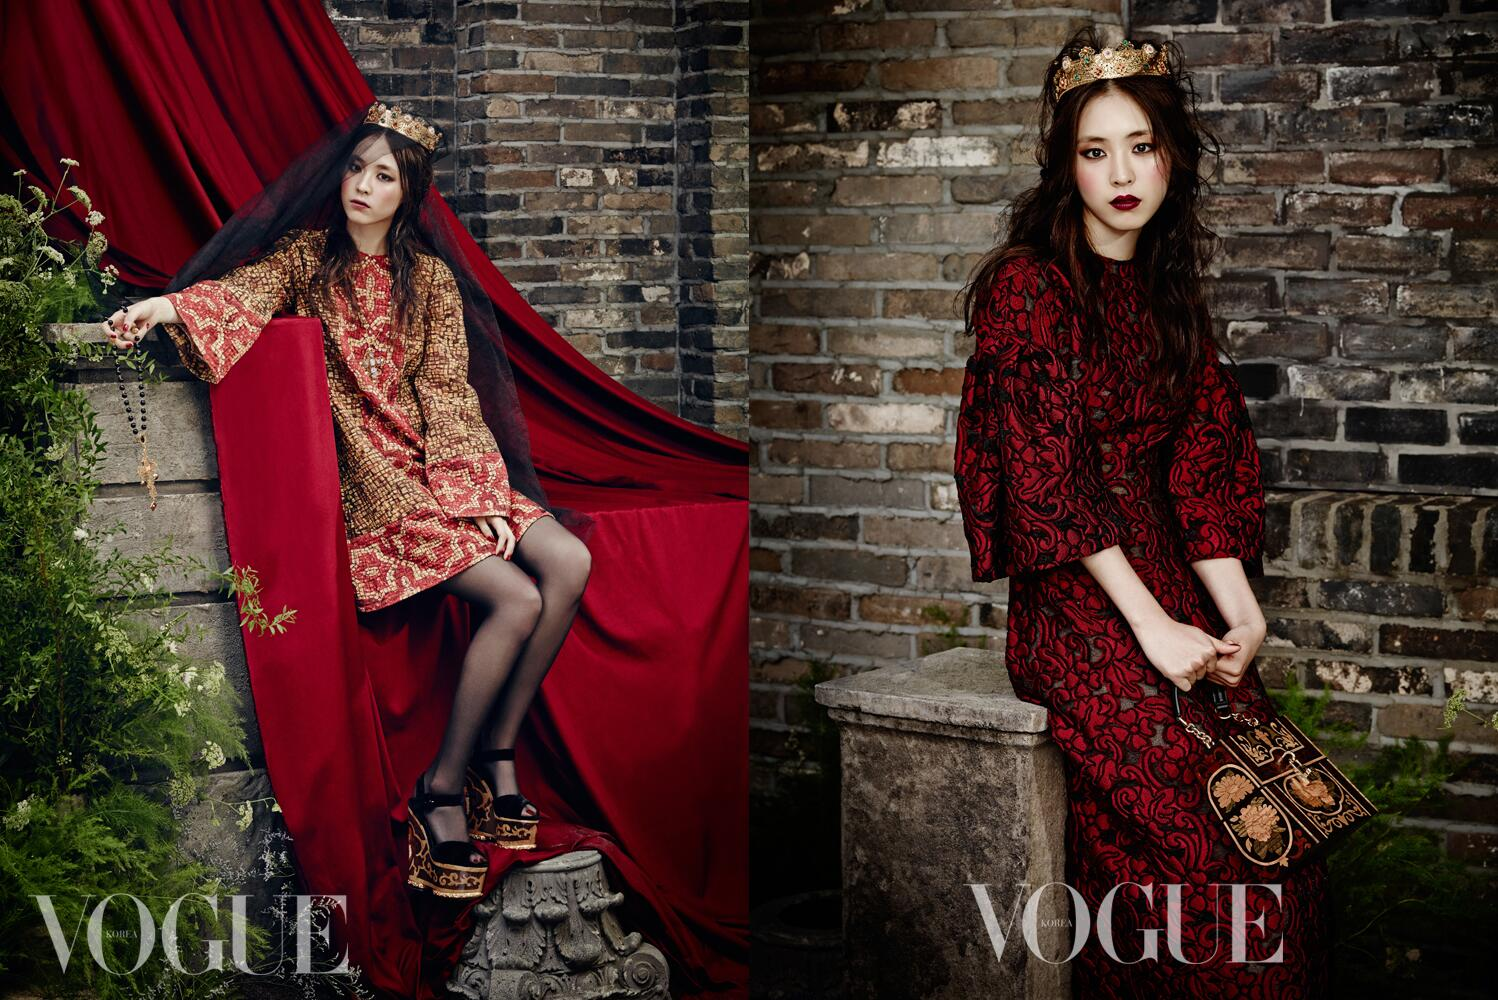 RT @SMTOWNGLOBAL: You can meet #LeeYeonHee who transformed into a queen in the September issue of Magazine 'Vogue Korea'! http://t.co/QGNVFNzigo